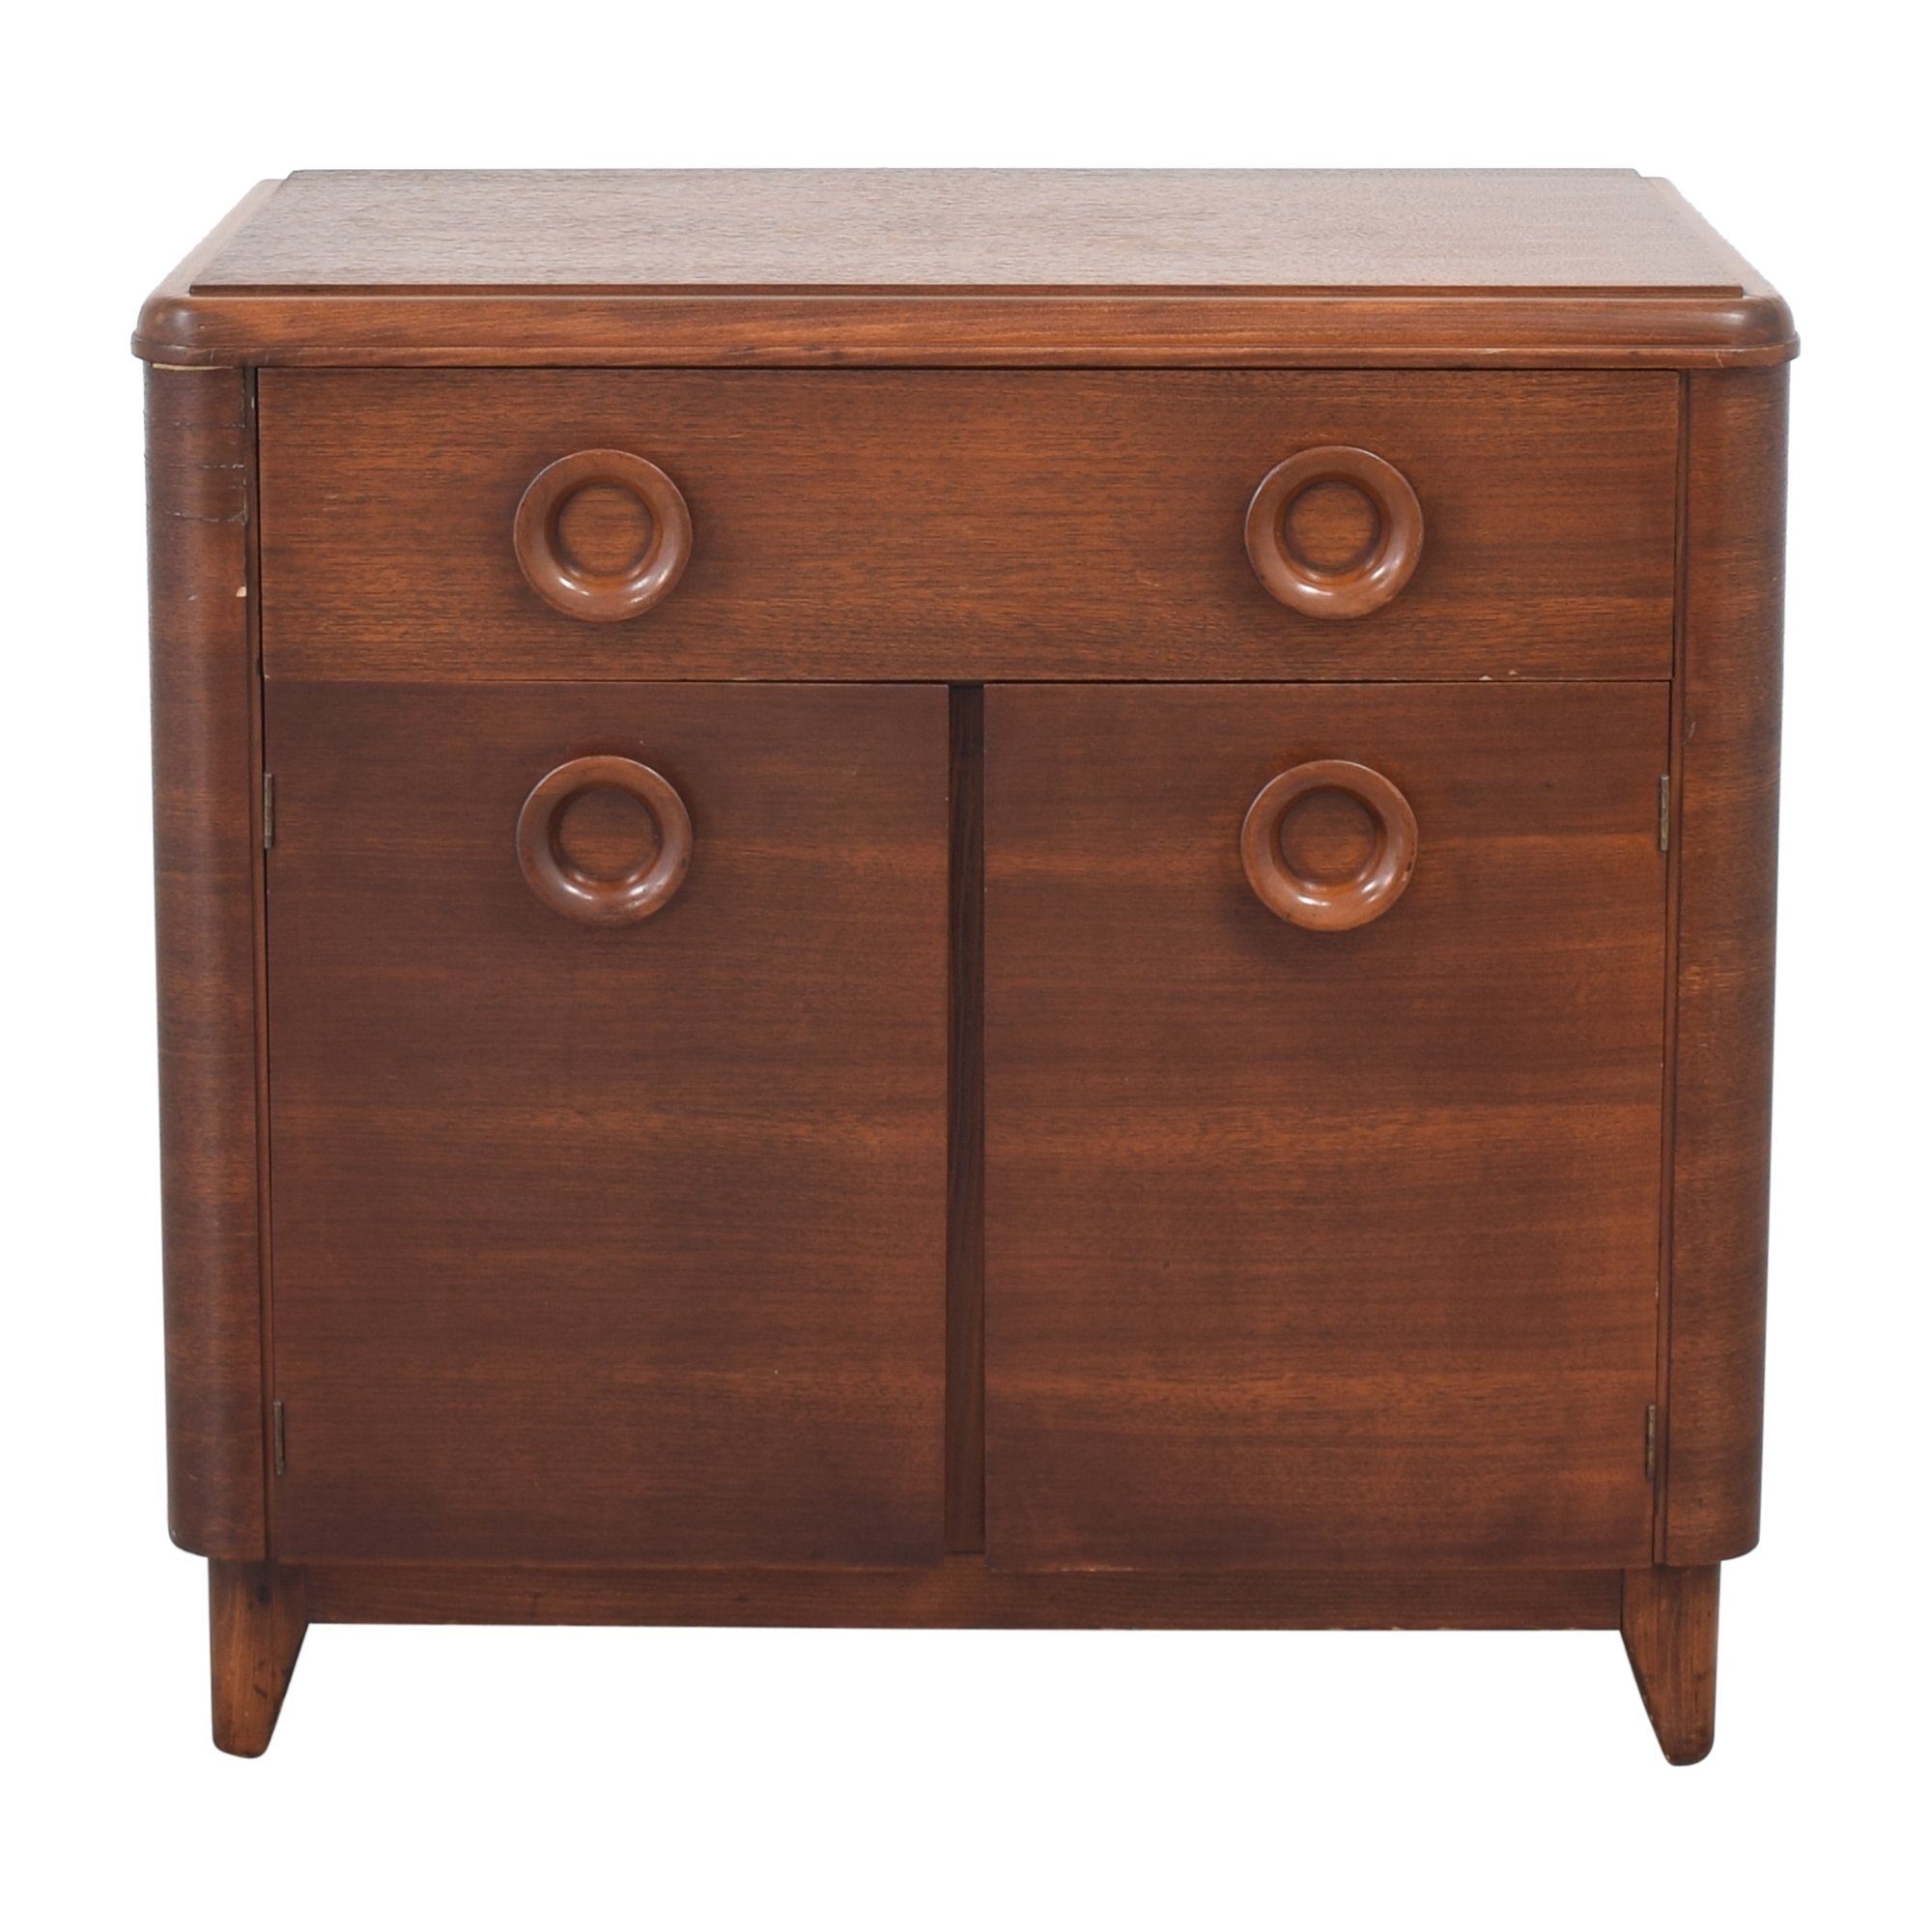 Vintage Mid Century Cabinet Nightstand End Tables